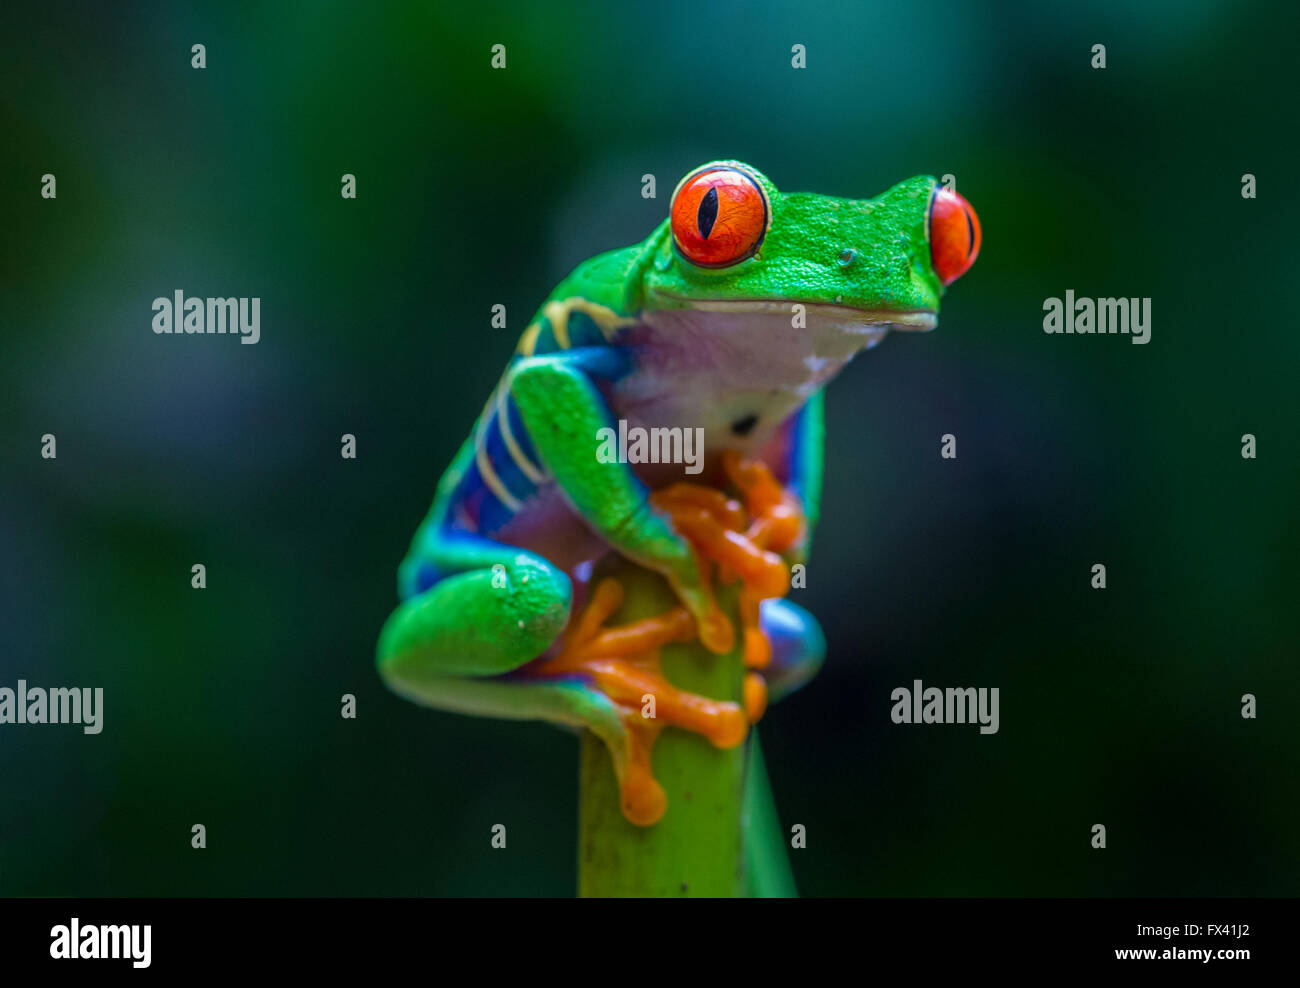 Red-Eyed Tree Frog in Costa Rican rain forest - Stock Image